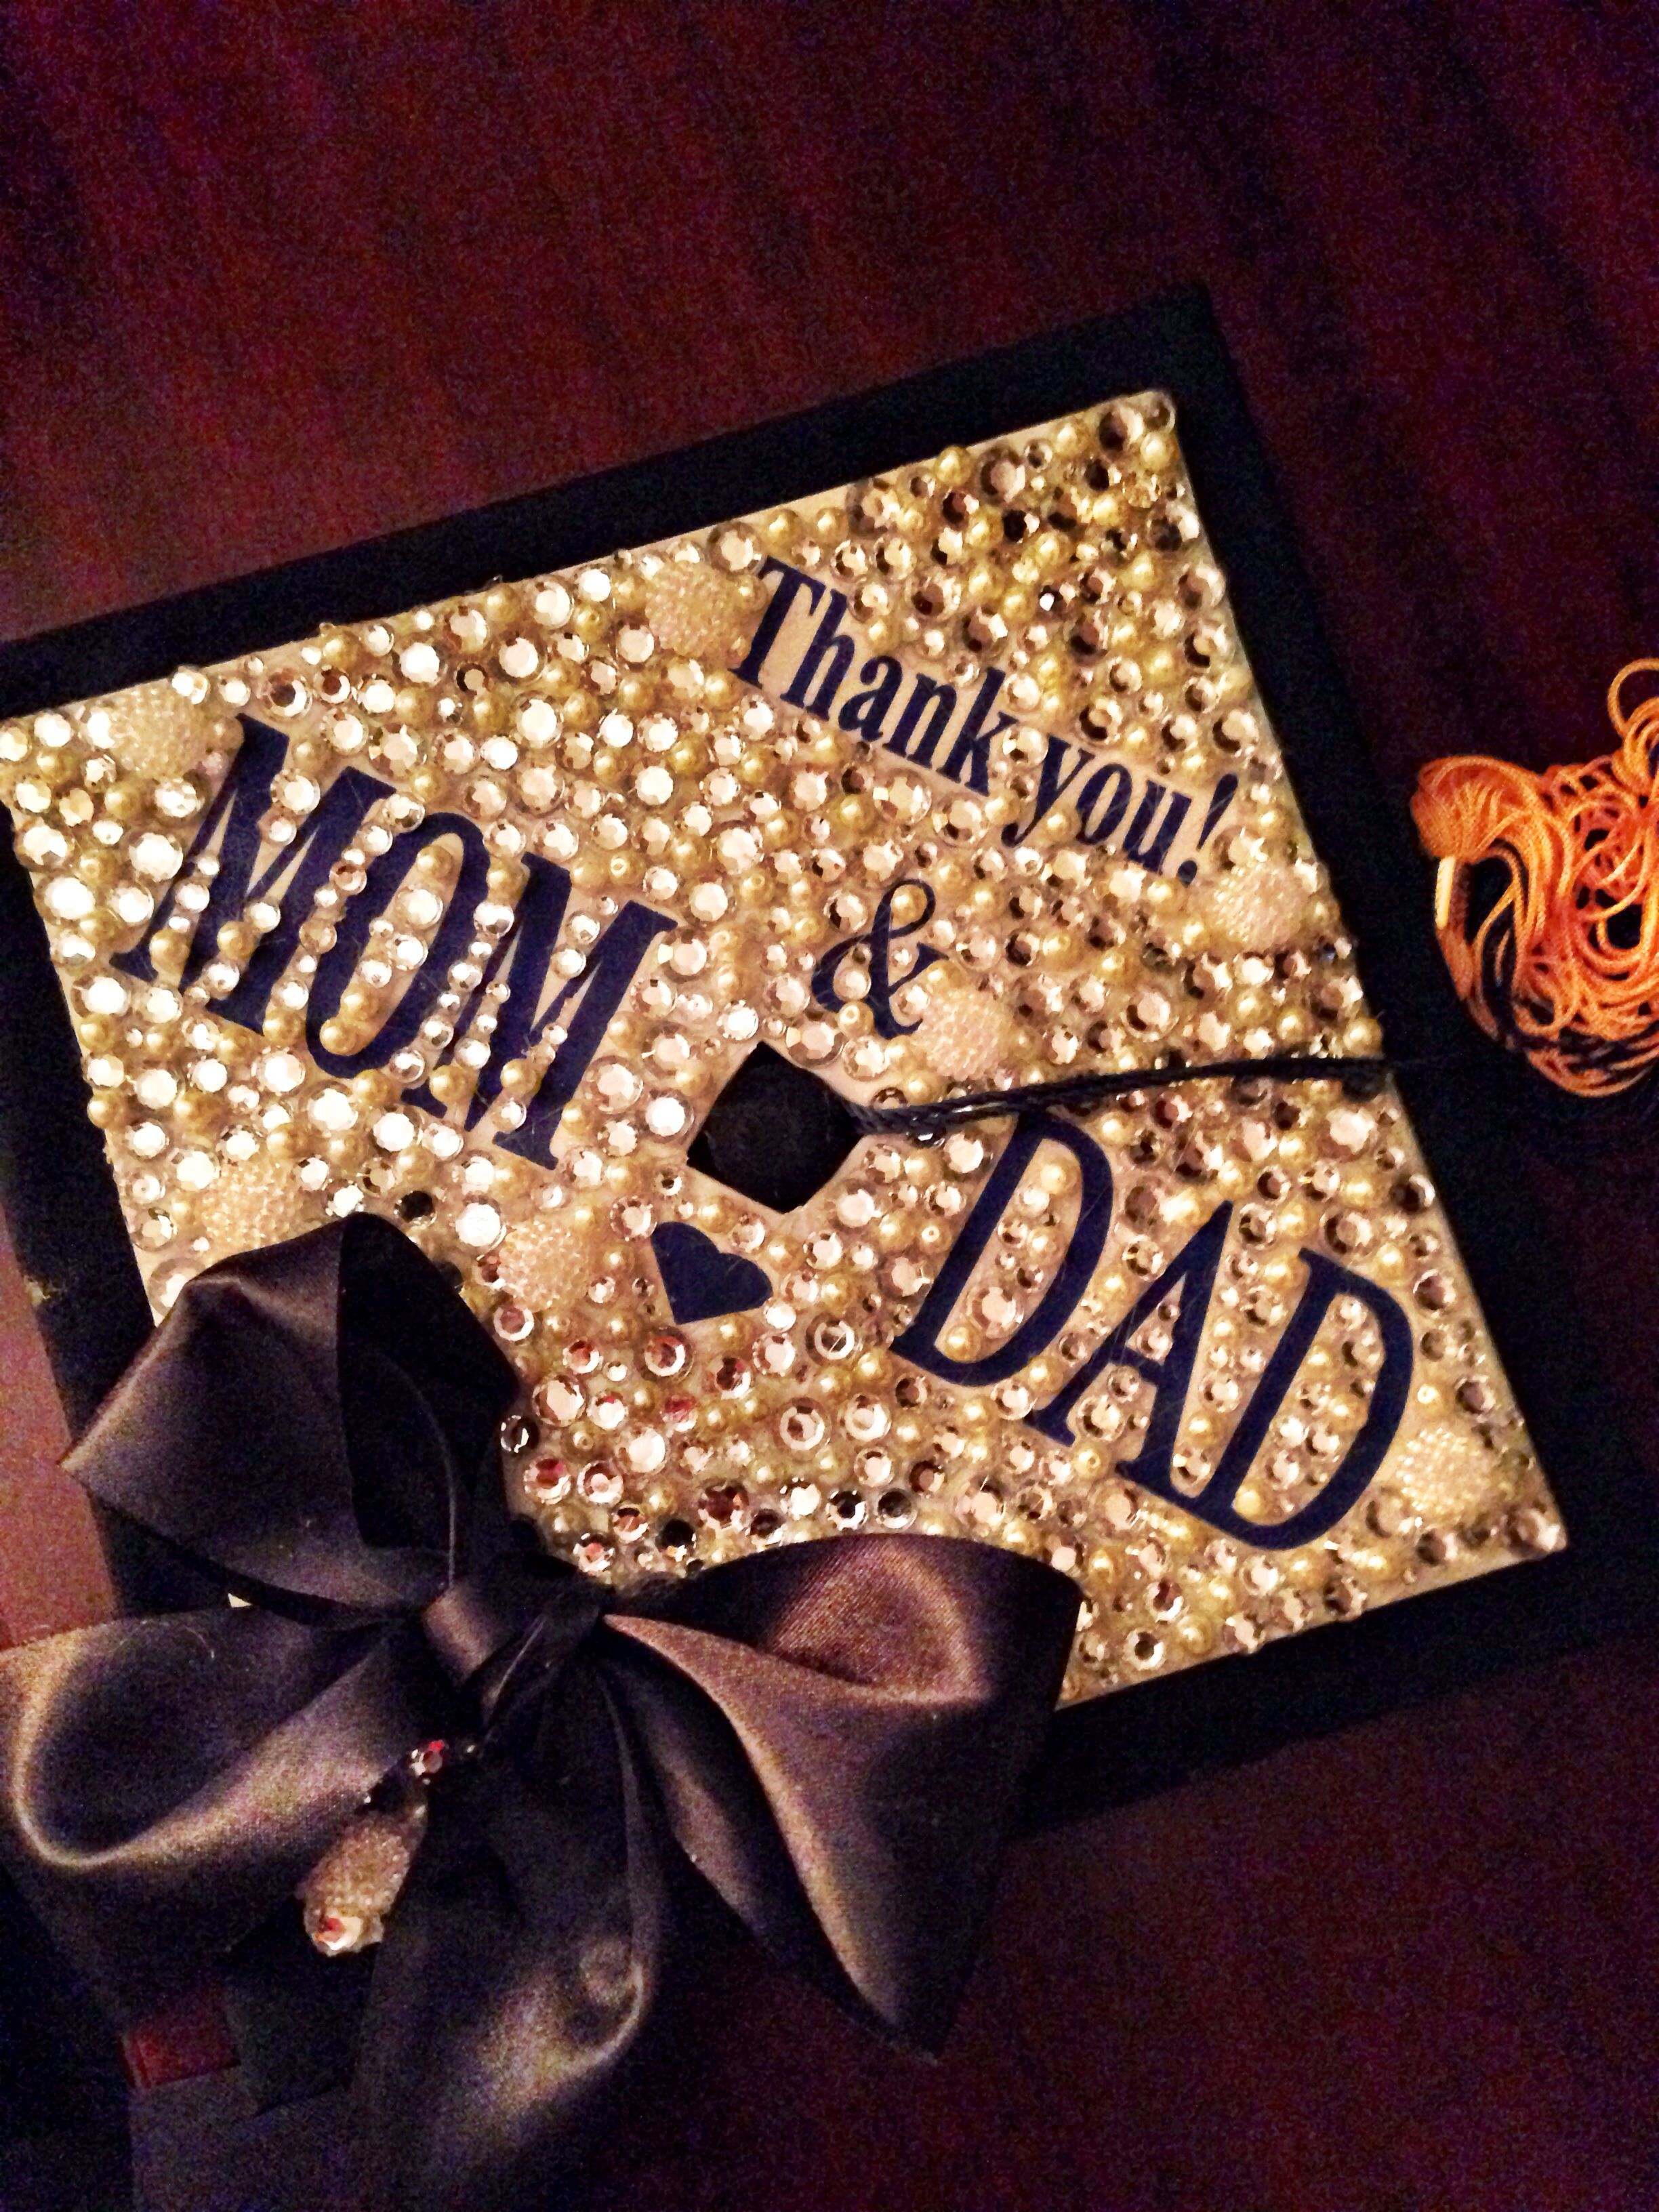 13 graduation cap decorating ideas - Graduation Caps Decorated